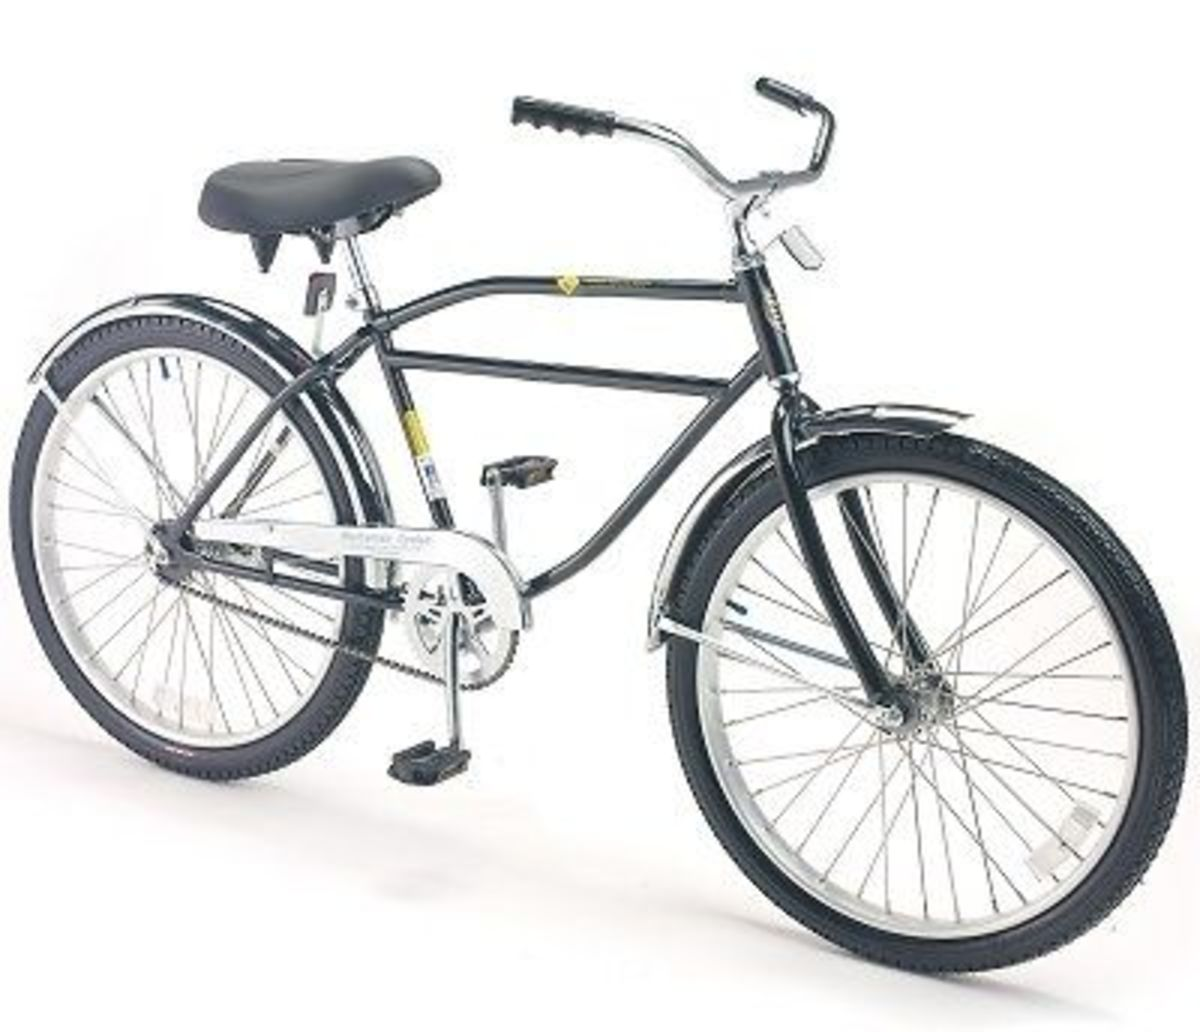 Workman Industrial Bicycle